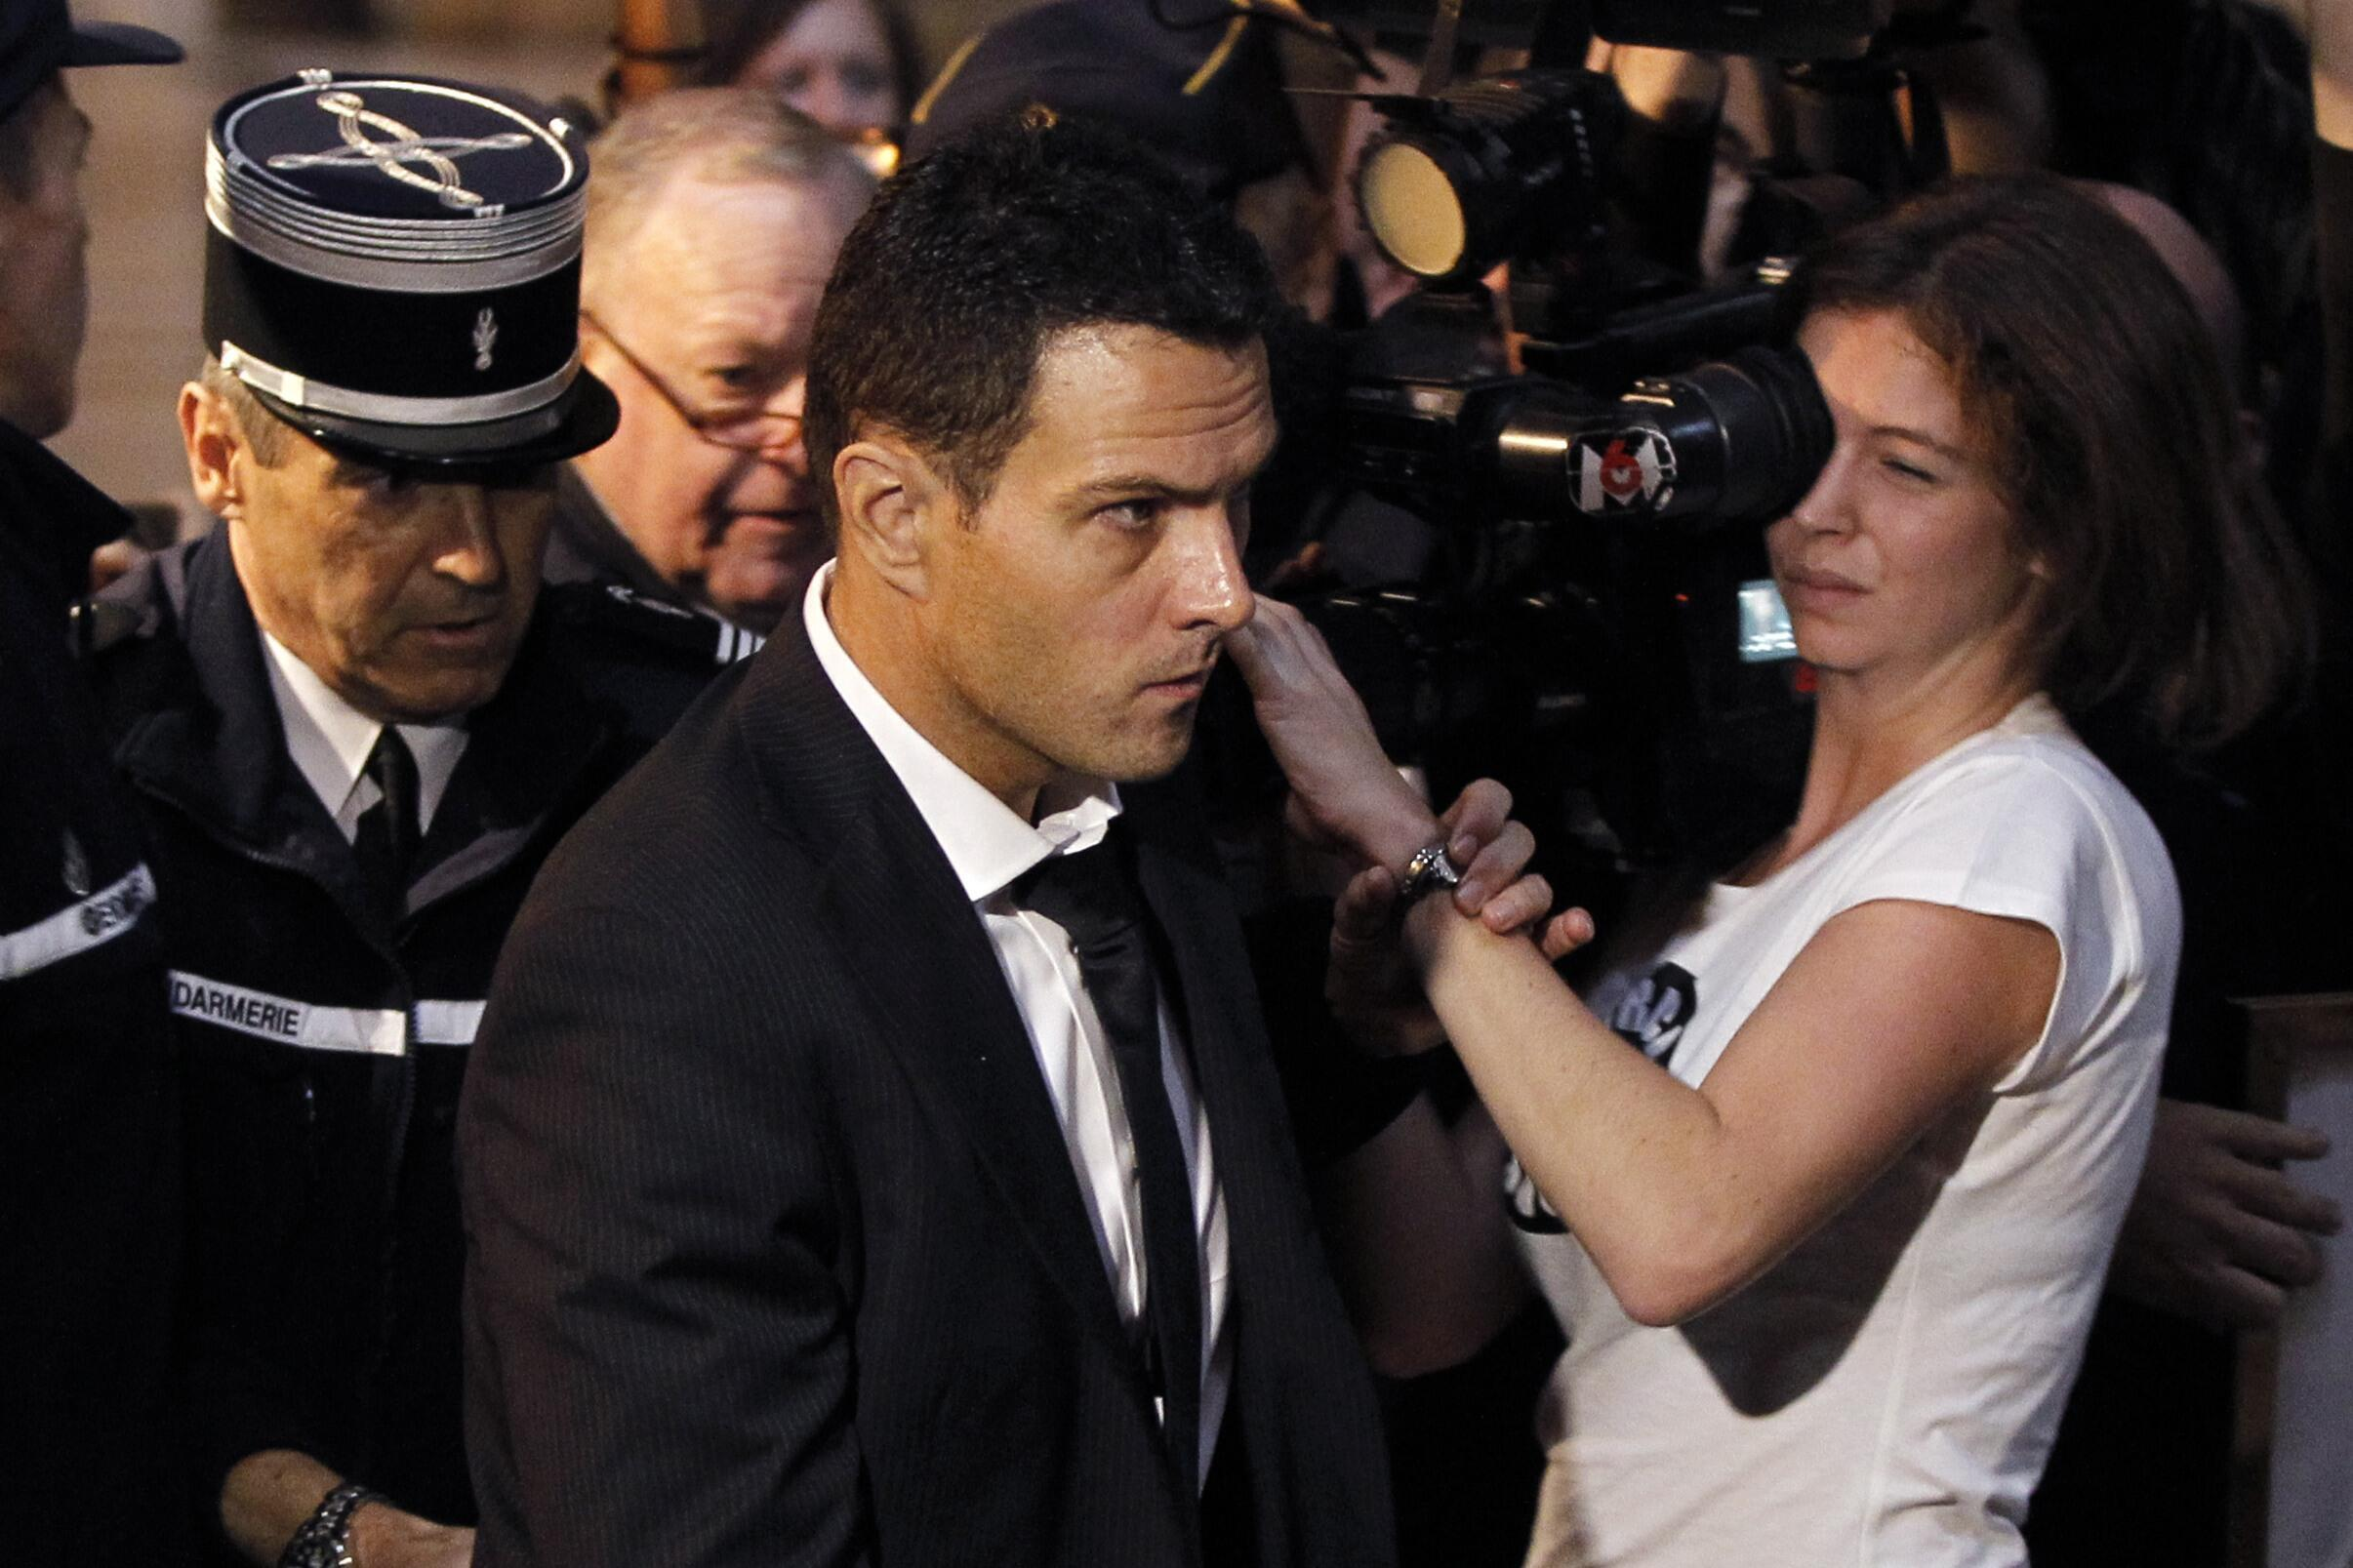 Kerviel goes to court